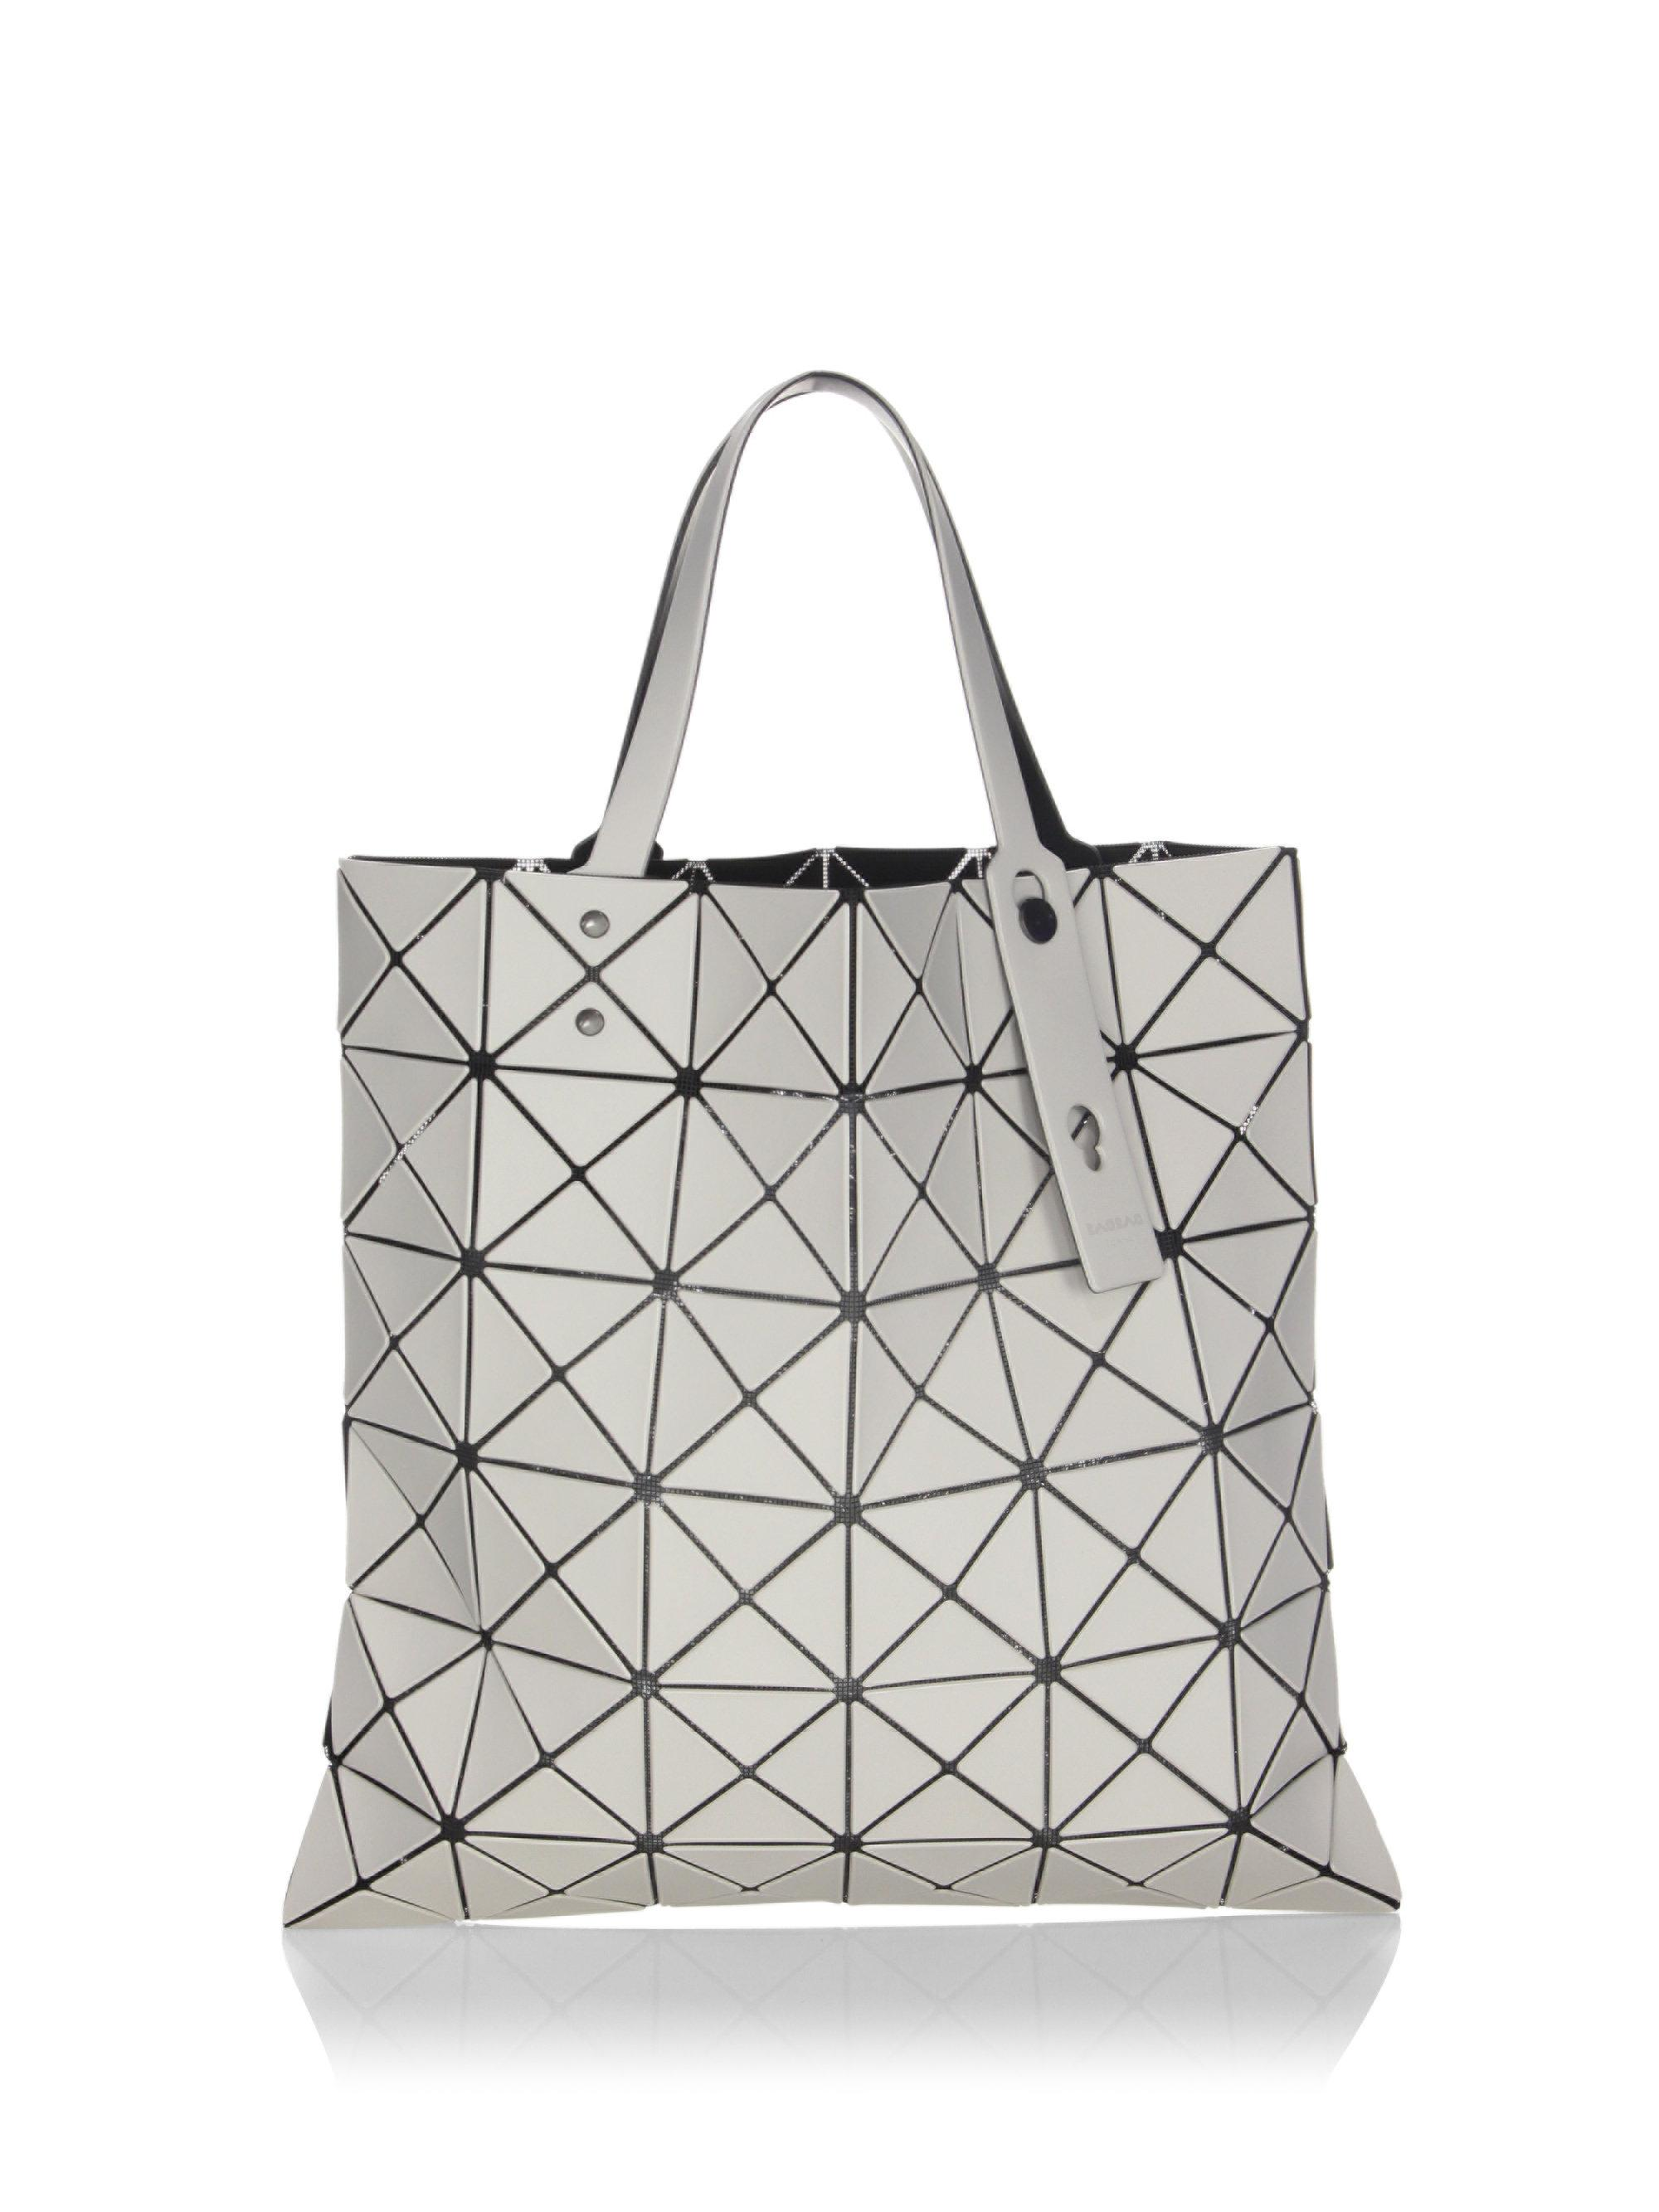 Lyst - Bao Bao Issey Miyake Lucent Frost Tote in Gray 33f7551740487